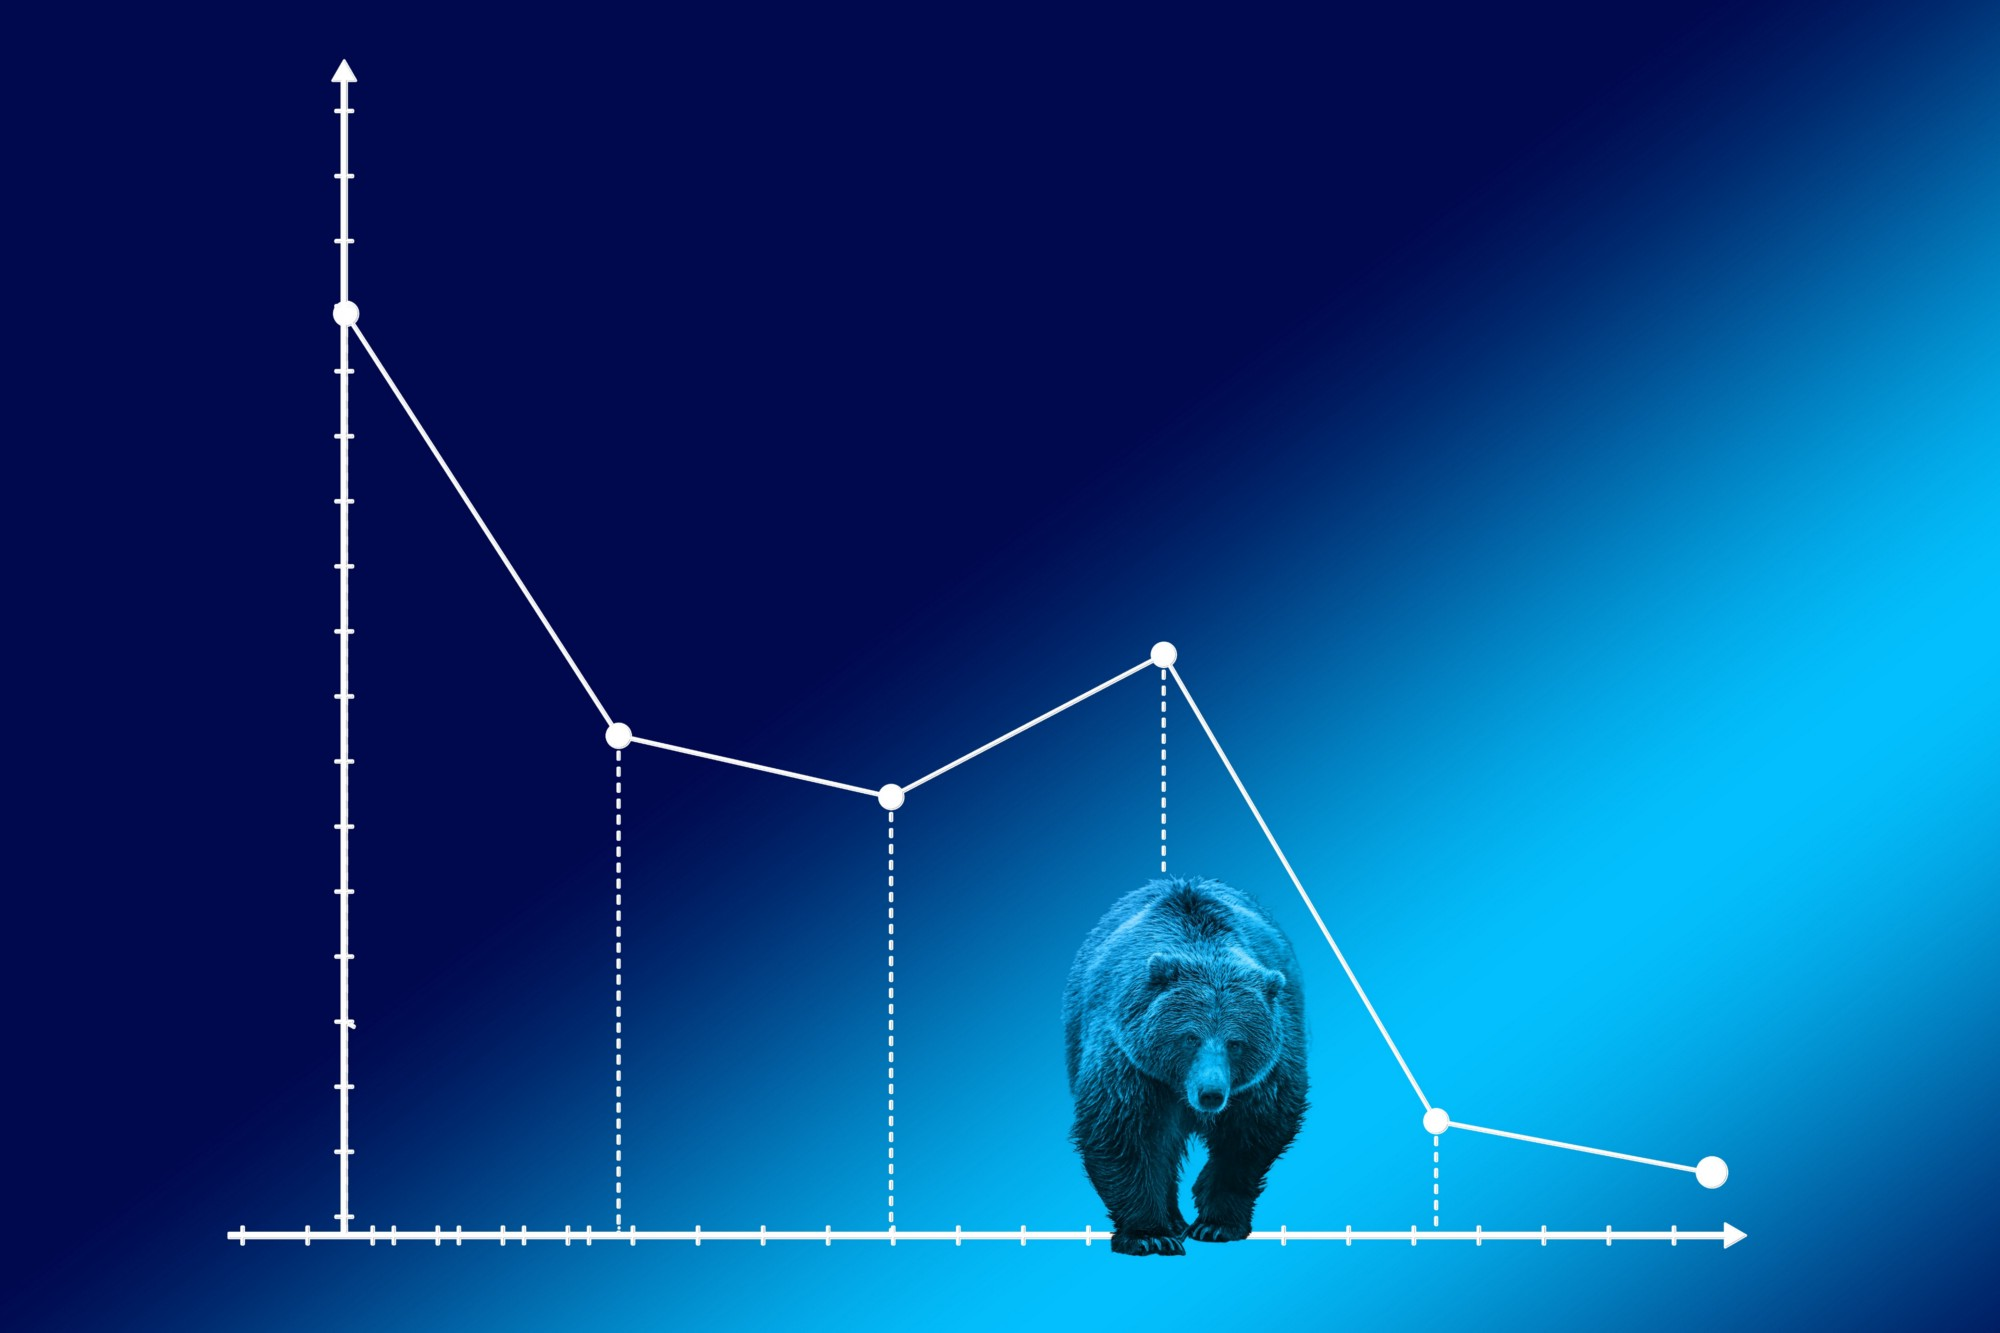 A bear seen lumbering toward the reader with a background of a falling graph.